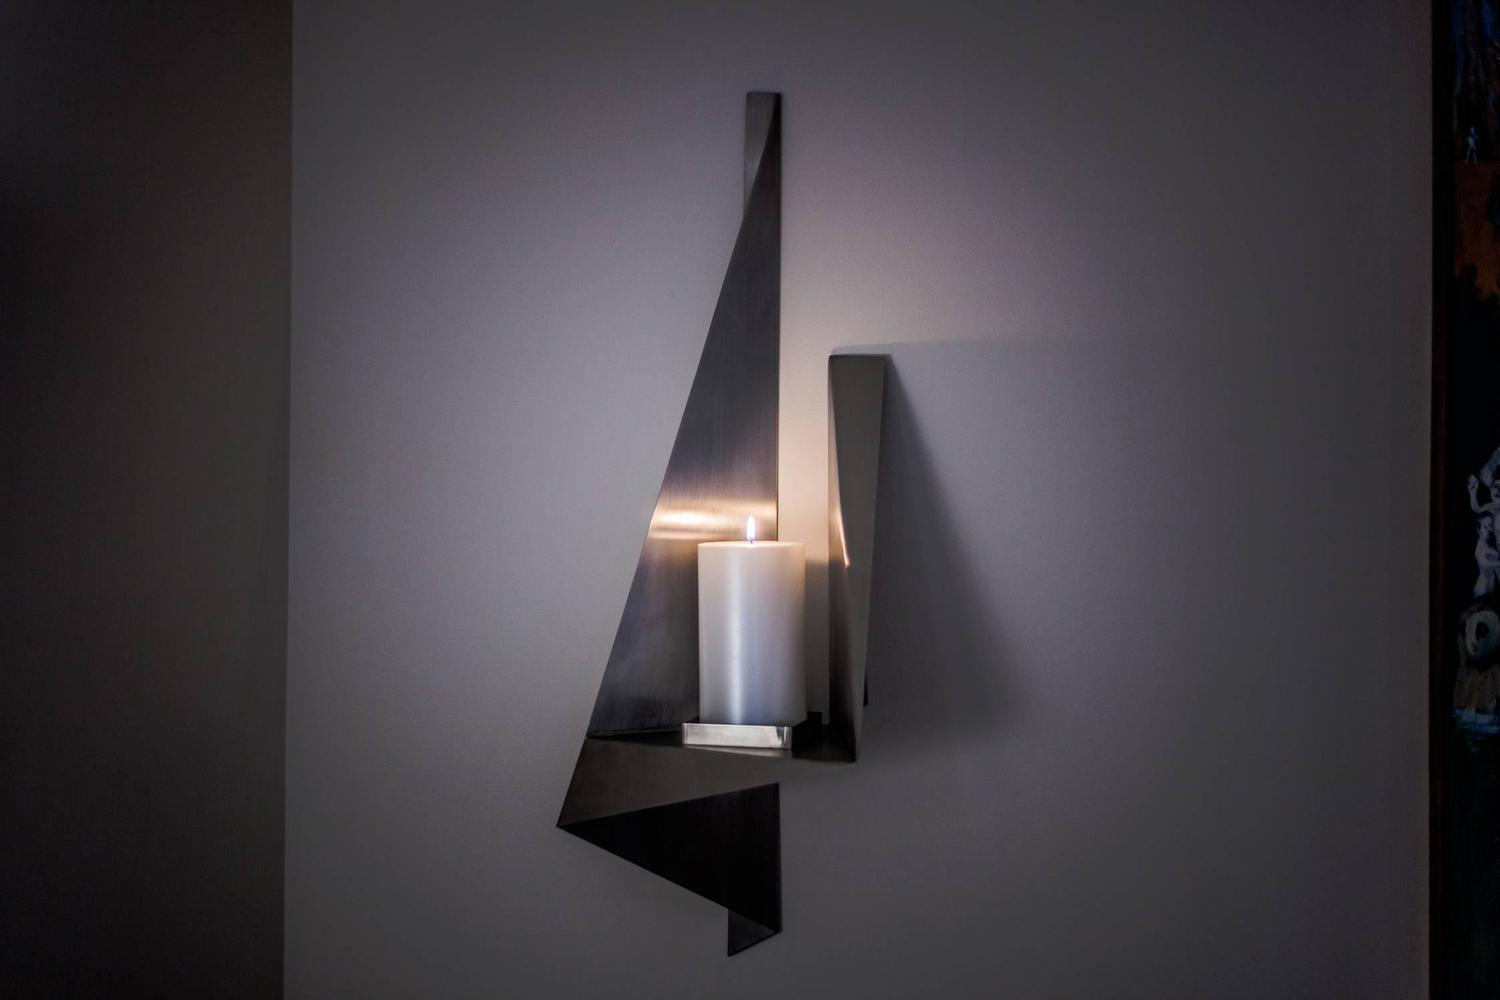 Unique Large Wall Sconces : Large Candle Wall Sconce, Custom Stainless Steel, USA, 1970s For Sale at 1stdibs